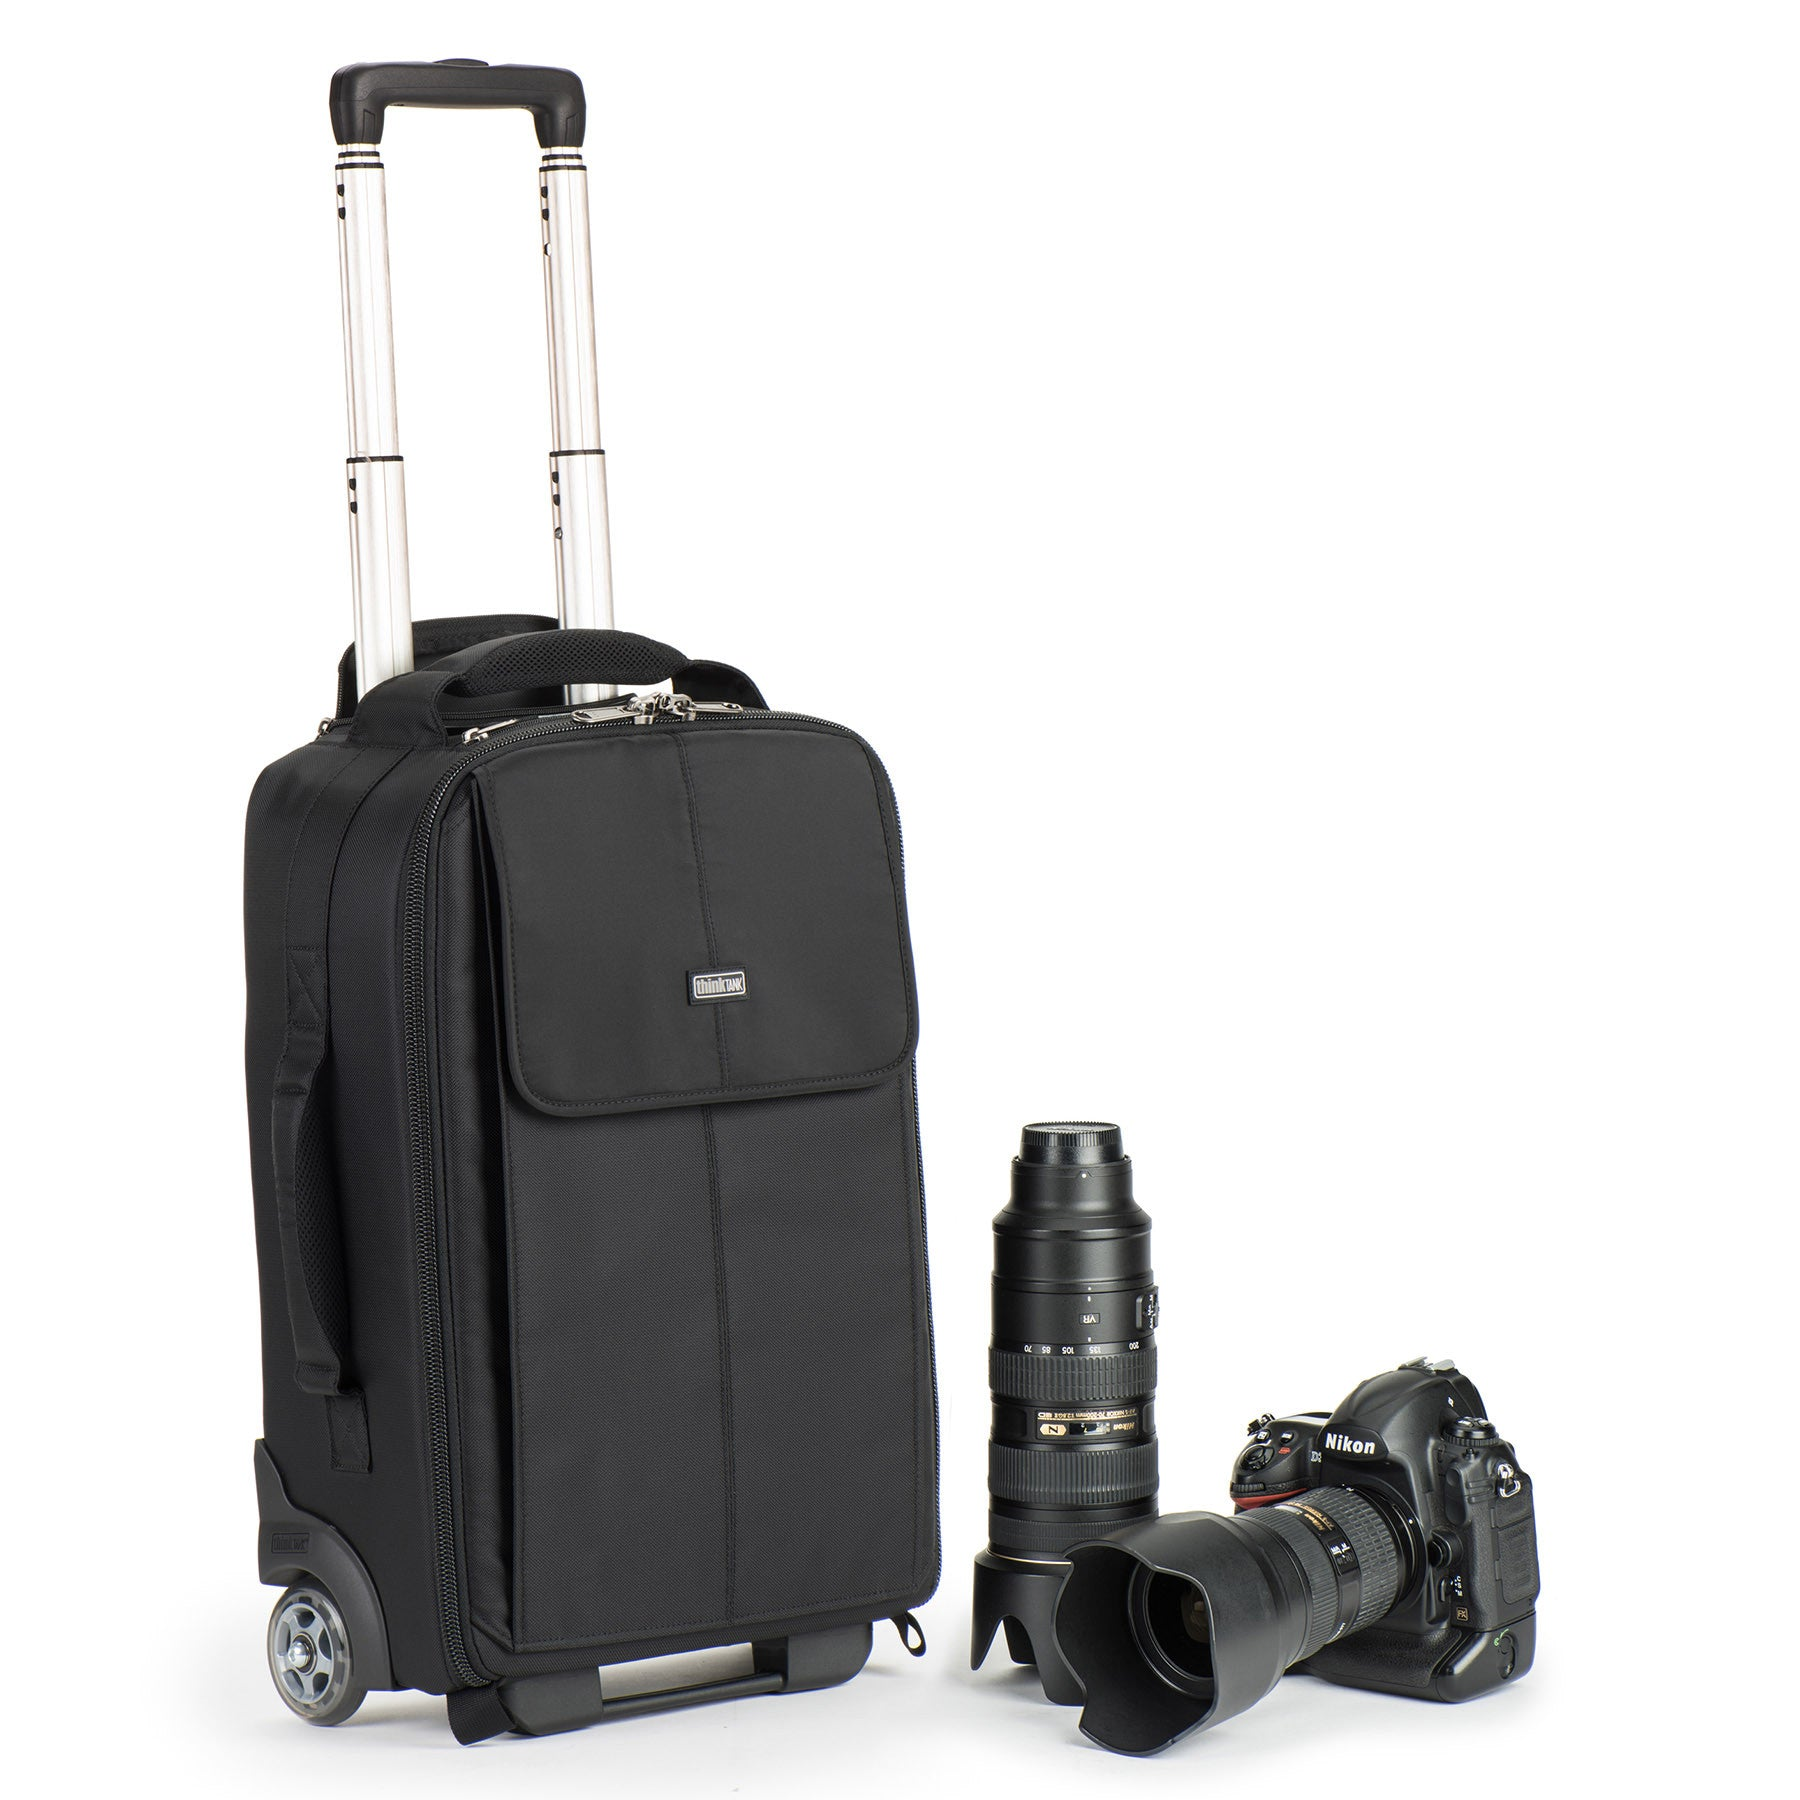 Airport Advantage™ Rolling Camera Bags for Airlines • Think Tank ... 6c907a6342de6